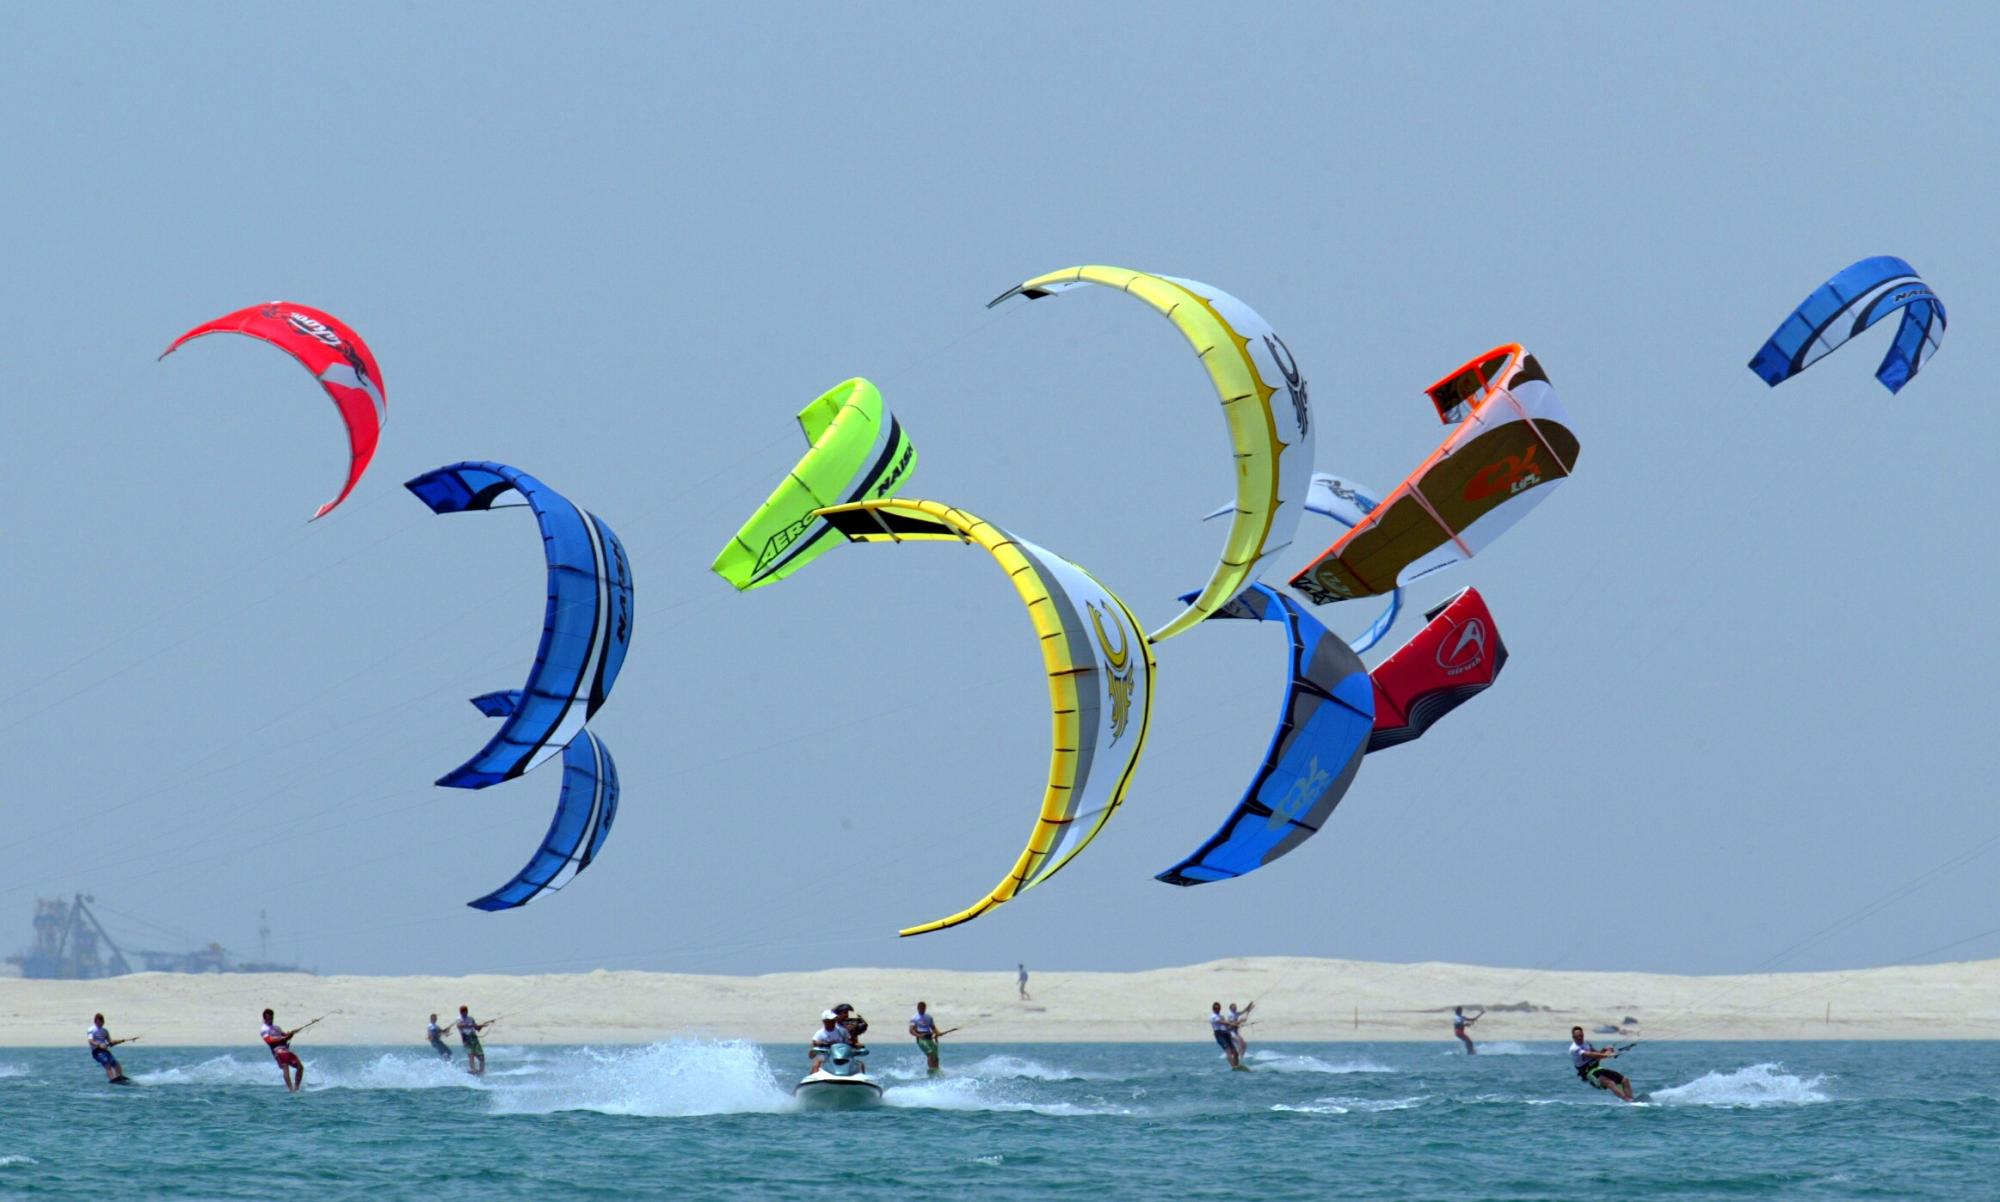 Kite_Surf_Event_Dubai 2002